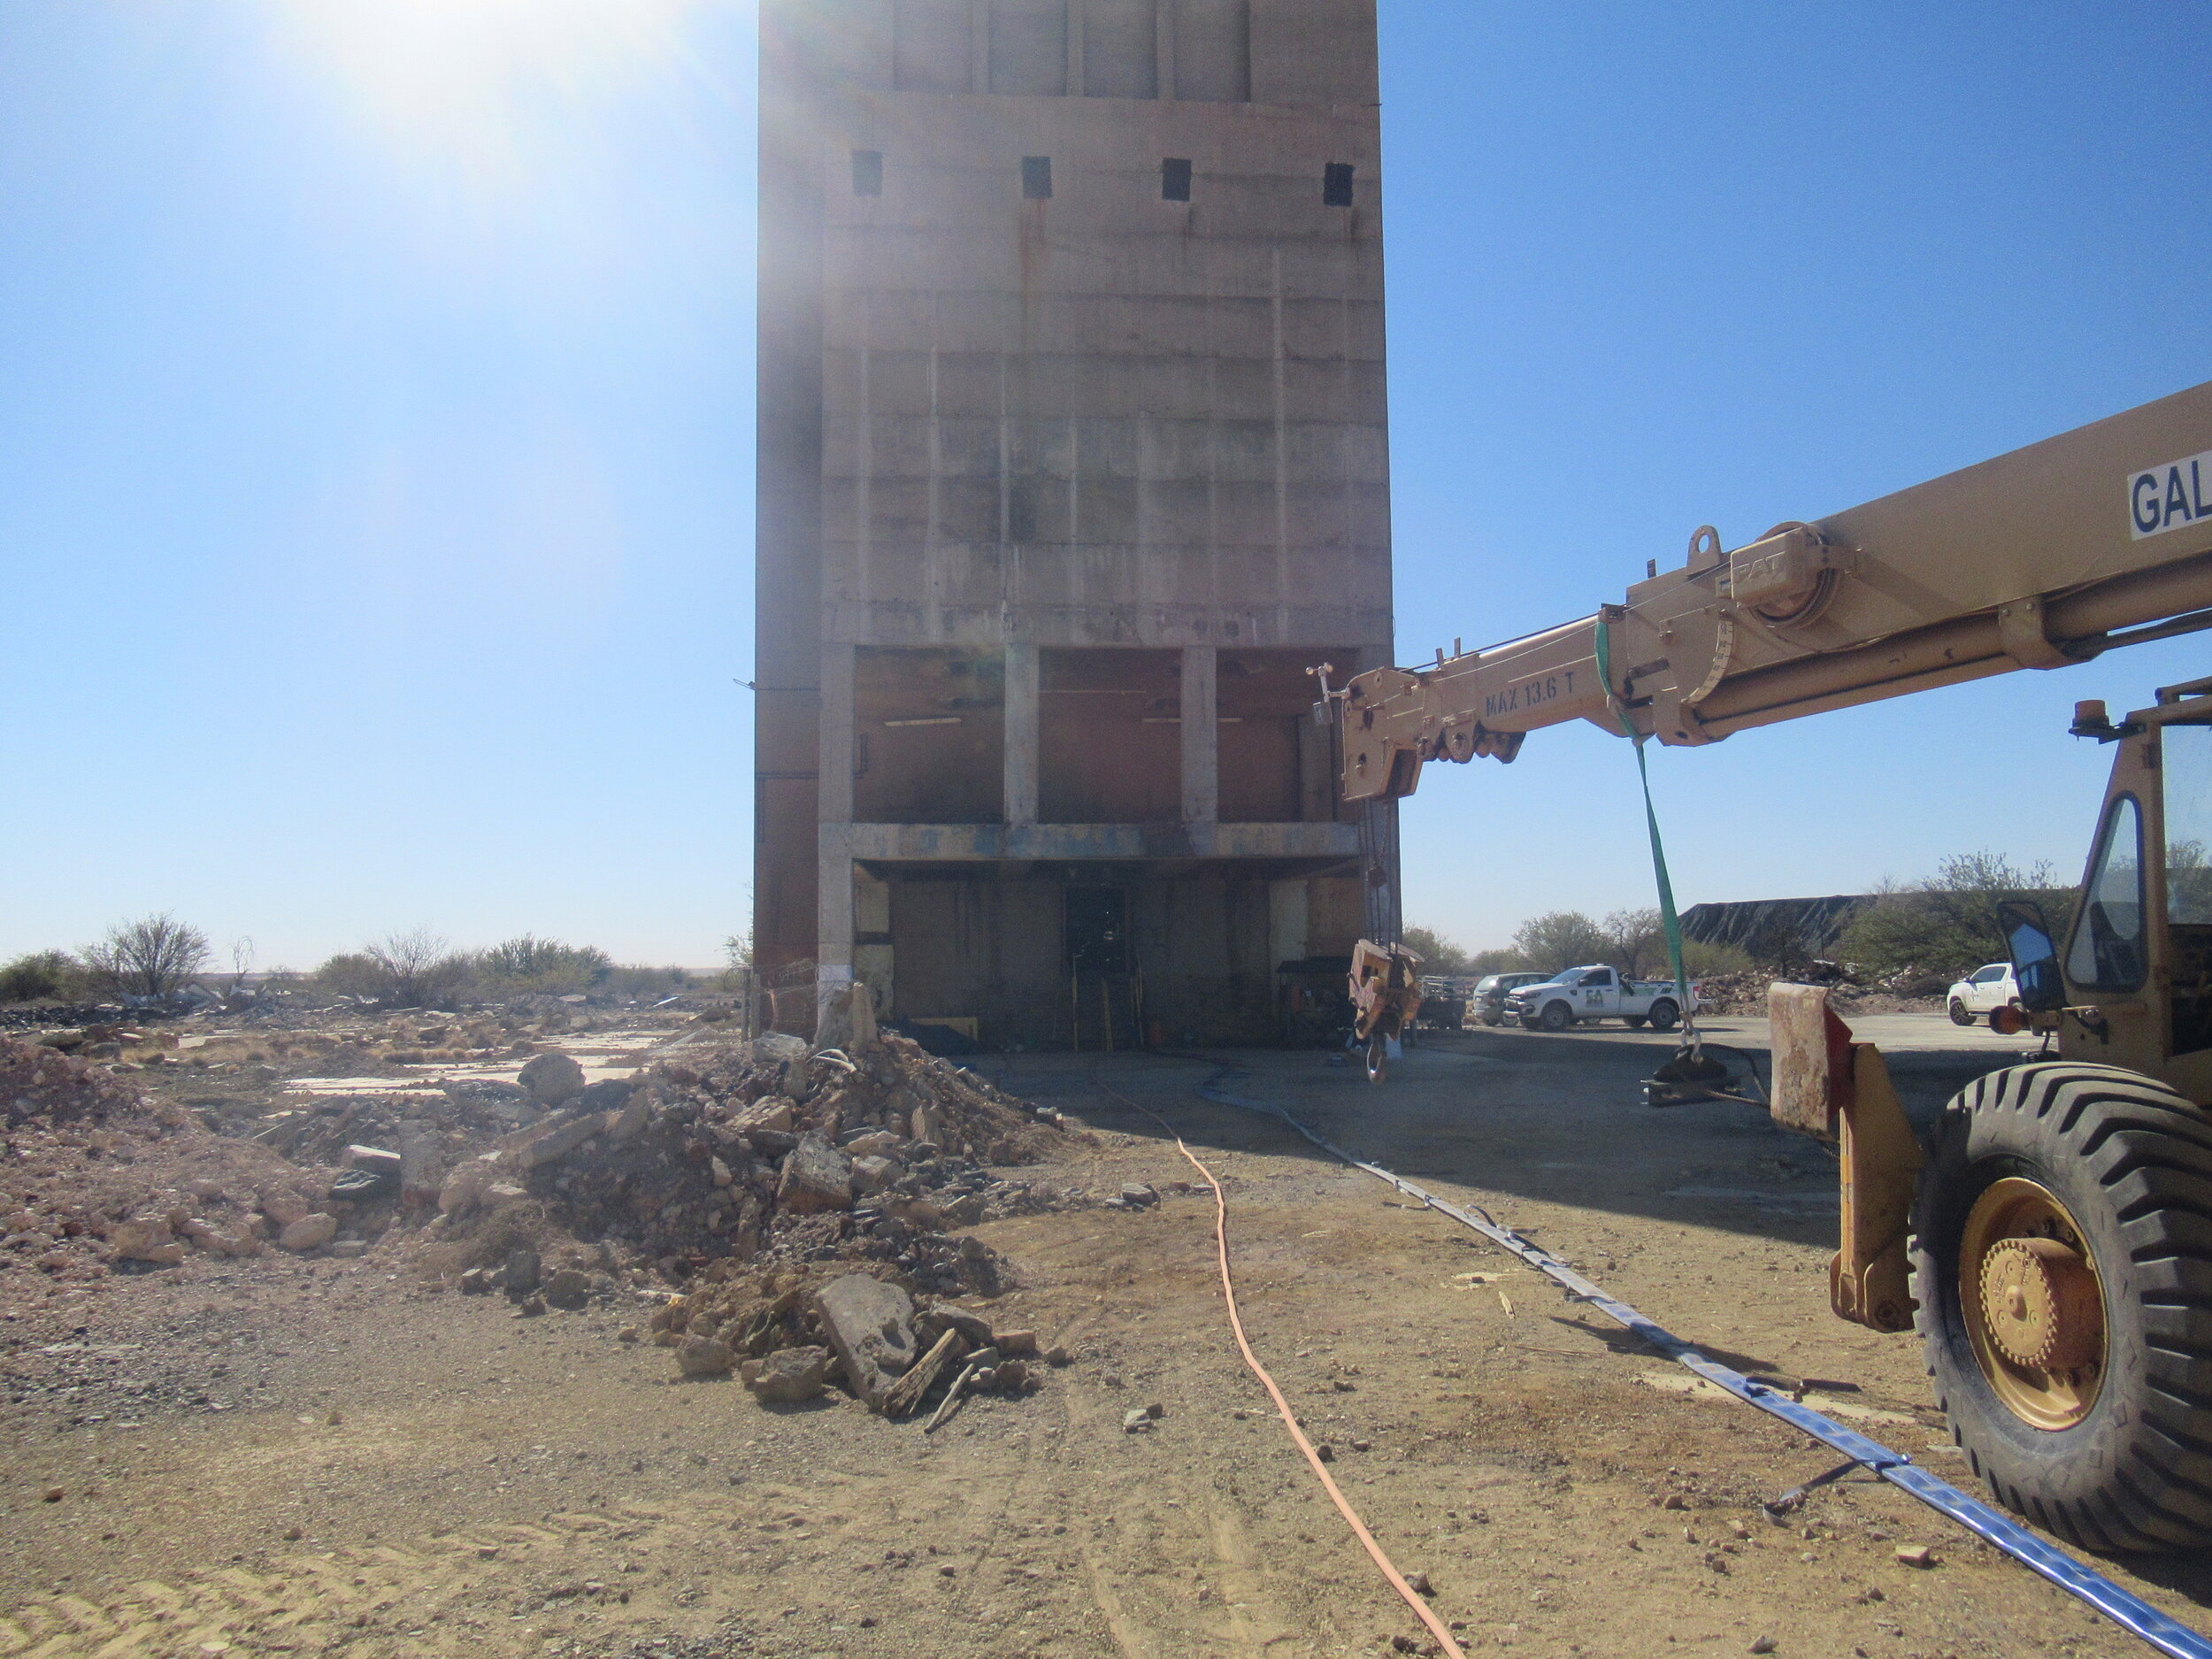 The disused mine still had its old concrete headworks with a 500mm thick slab cast over the shaft to prevent accidents.